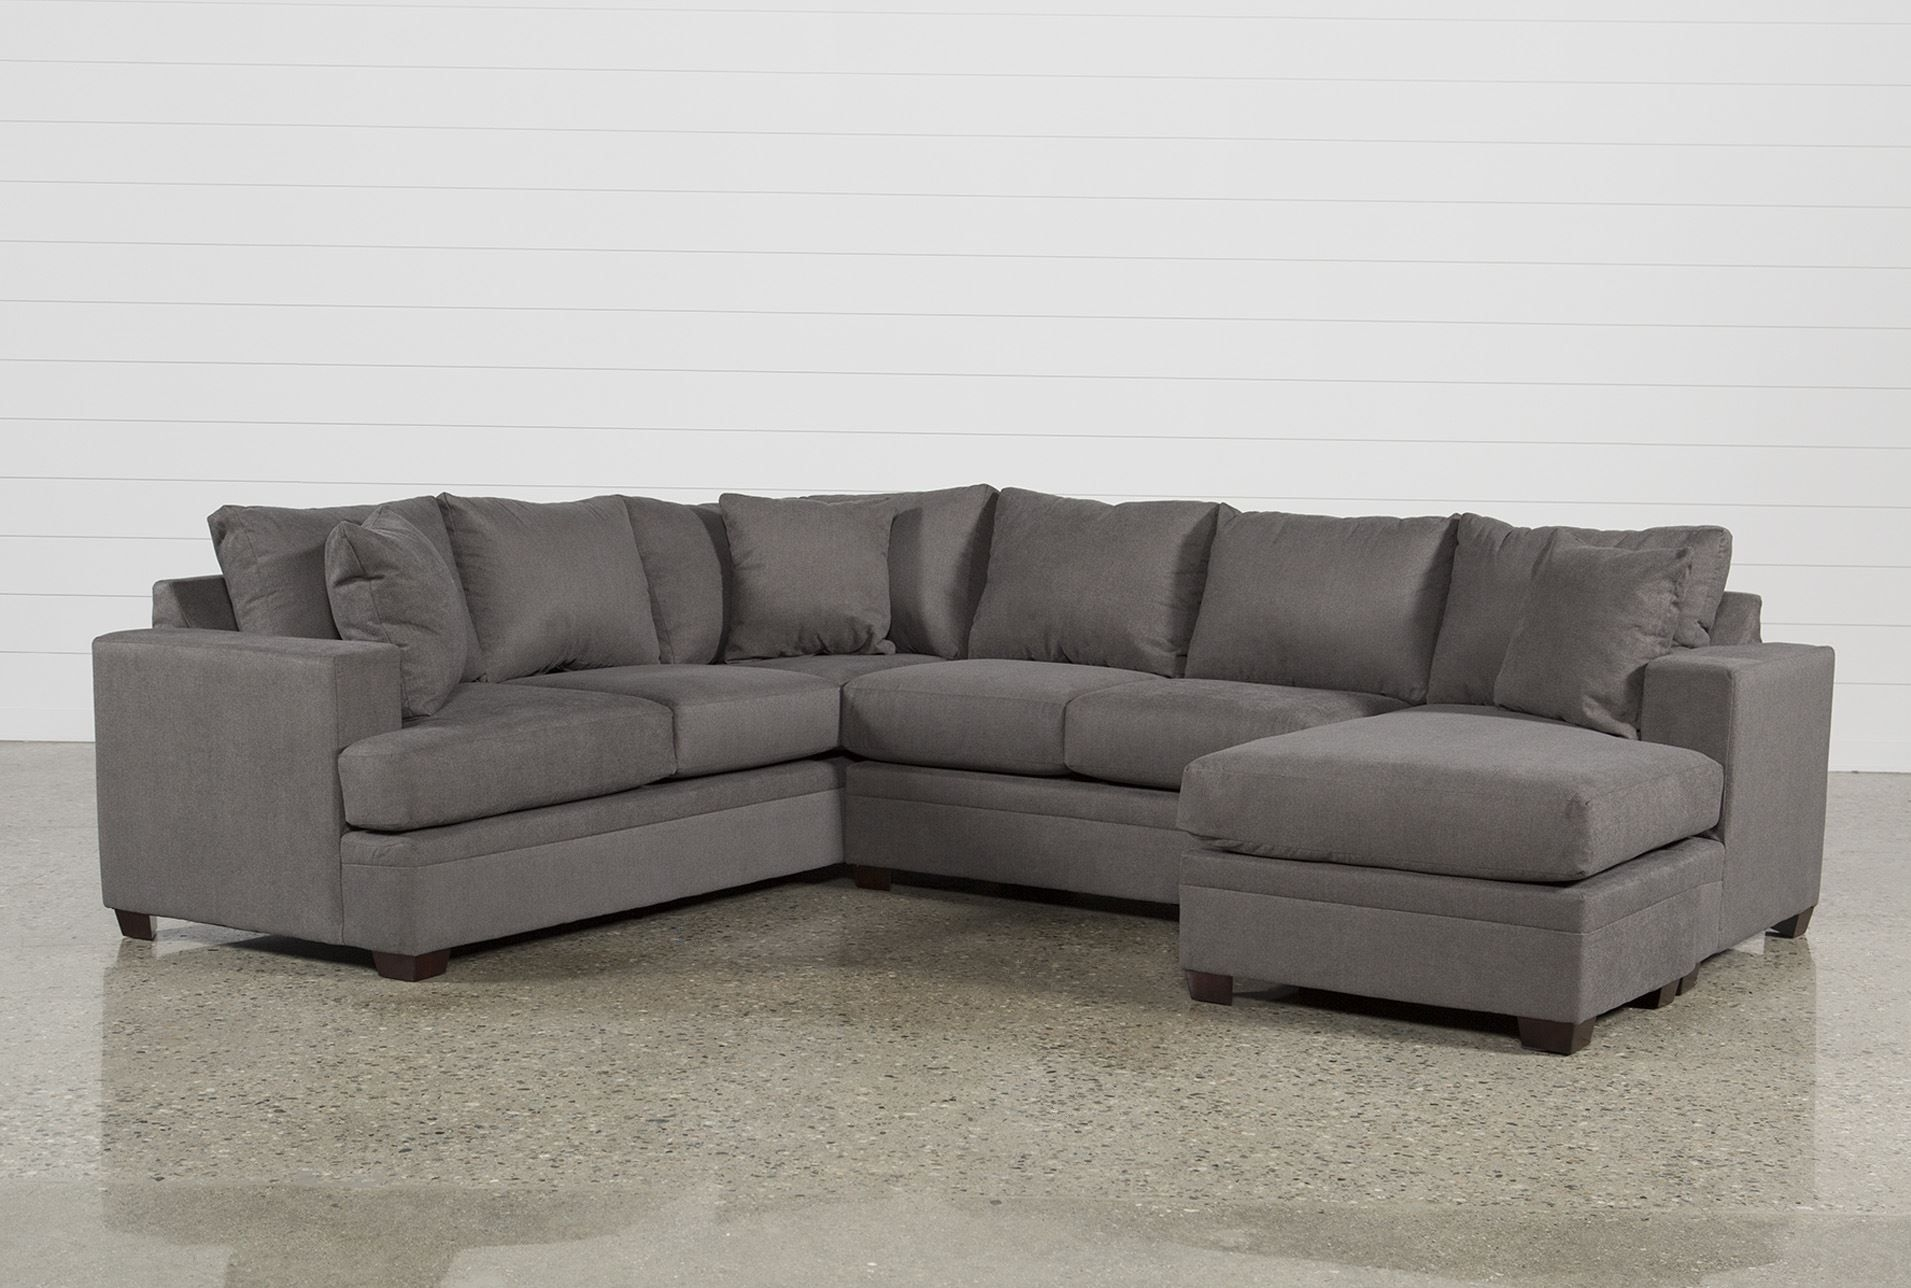 Kerri 2 Piece Sectional W/raf Chaise In 2018 | Products | Pinterest Within Aquarius Dark Grey 2 Piece Sectionals With Raf Chaise (View 7 of 25)